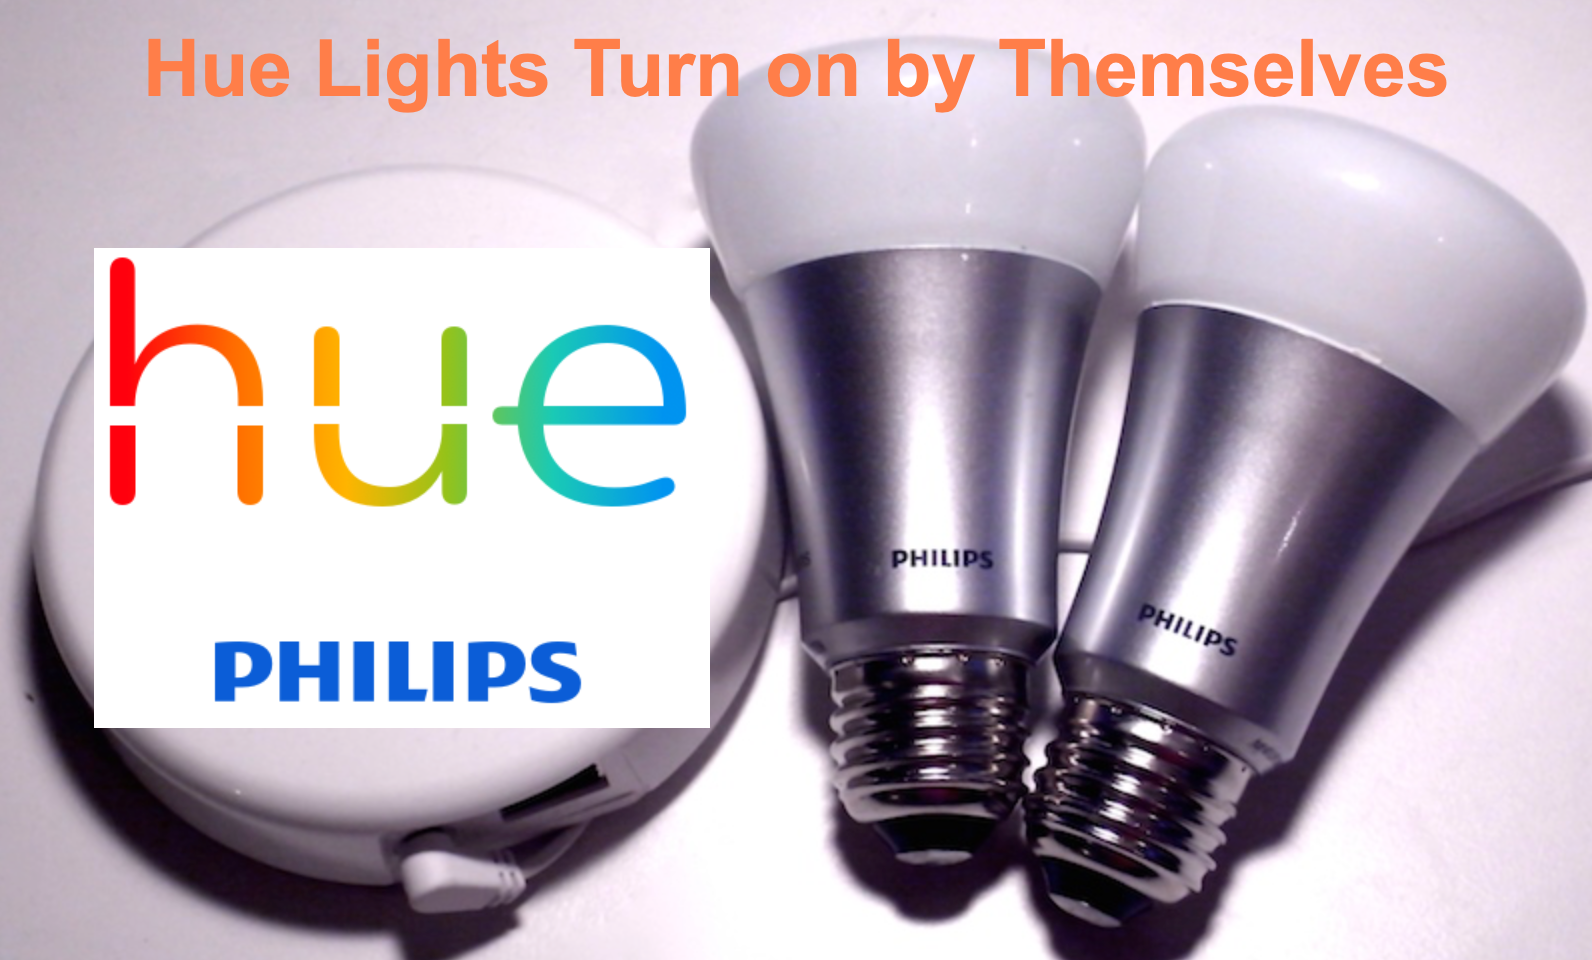 Hue Lights Turn on by Themselves